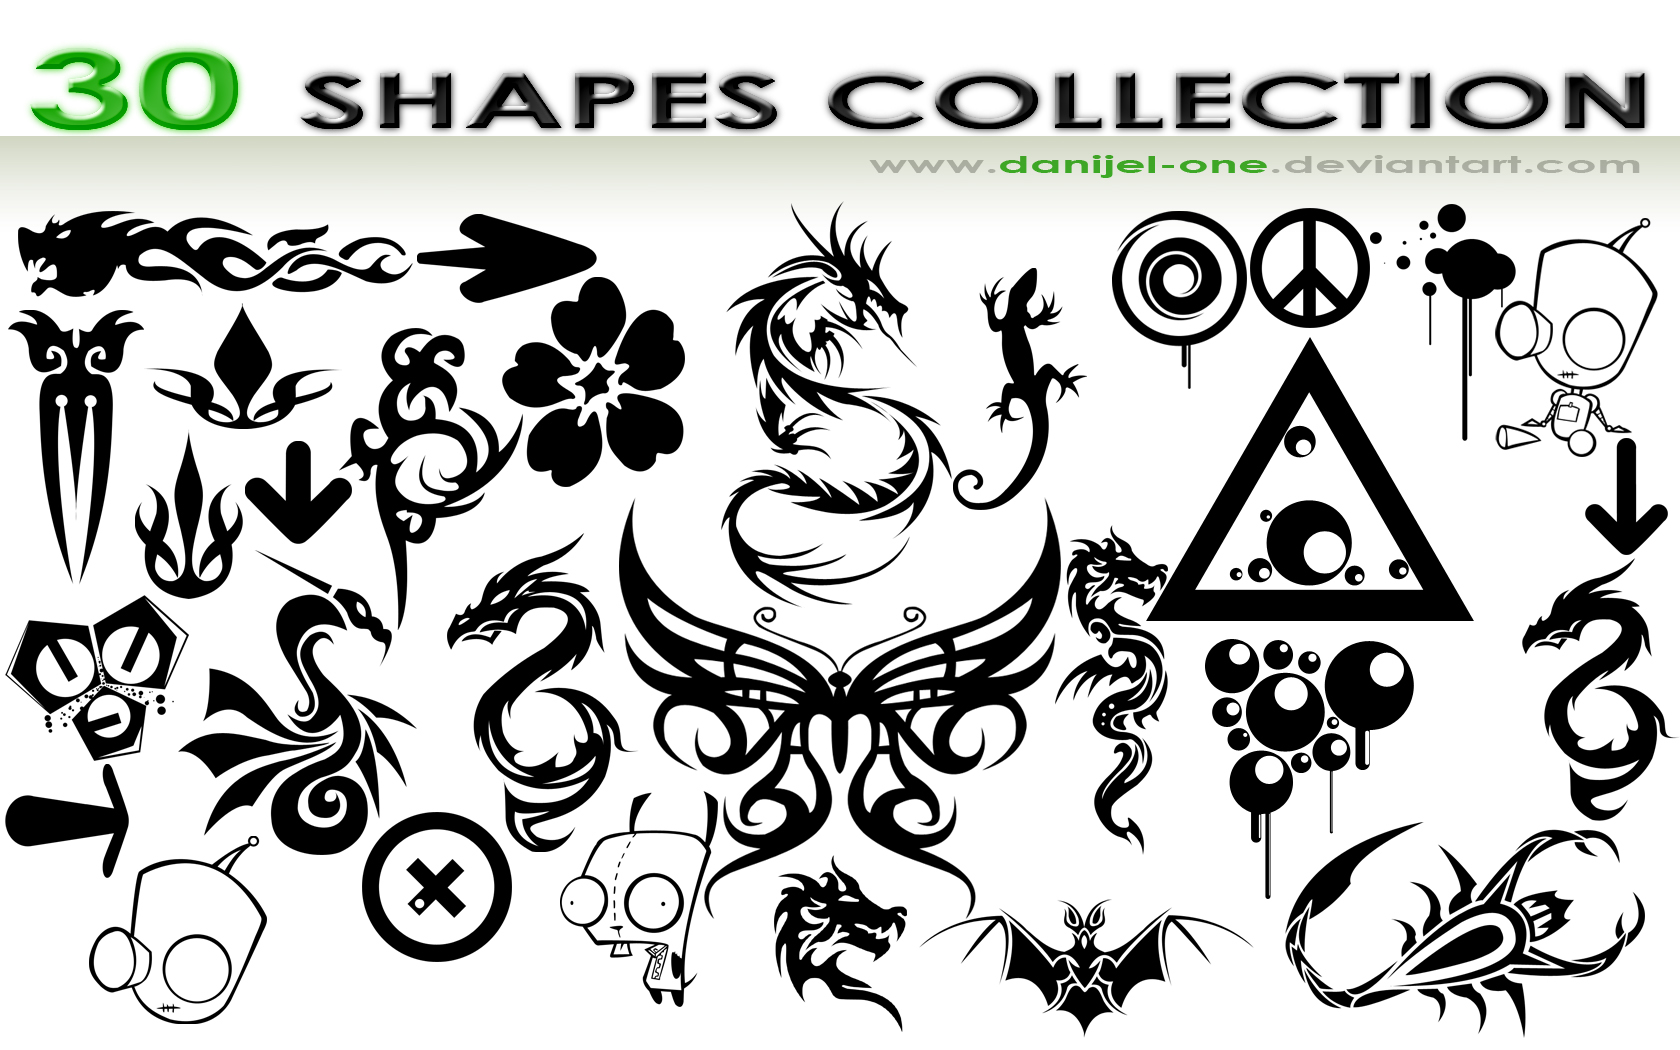 16 Photoshop Vector Shapes Images